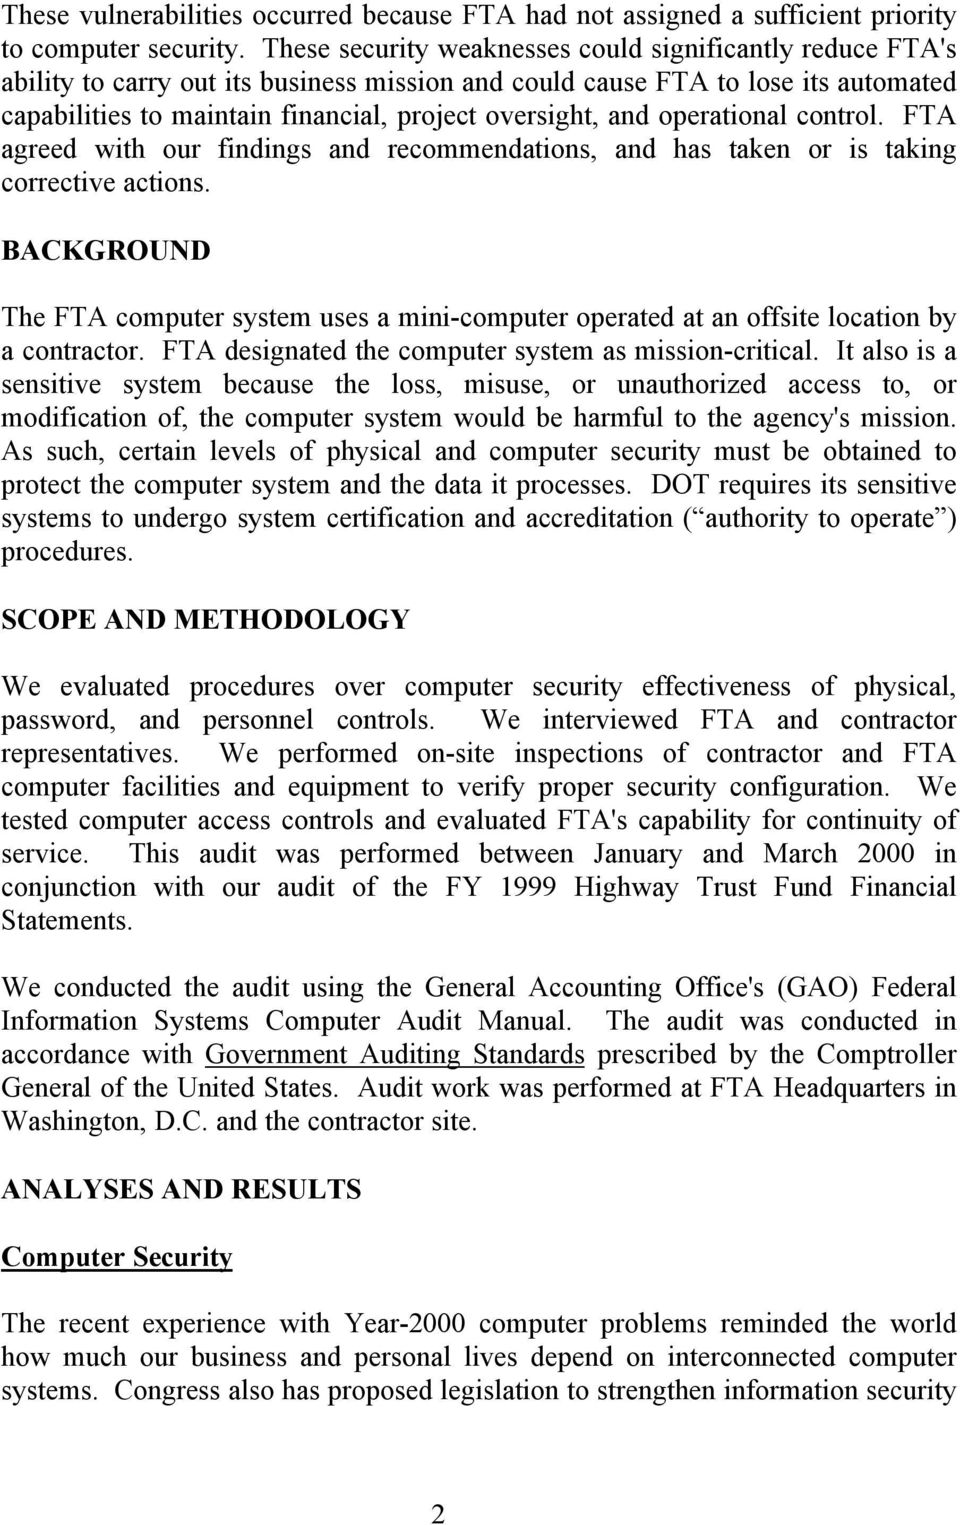 and operational control. FTA agreed with our findings and recommendations, and has taken or is taking corrective actions.